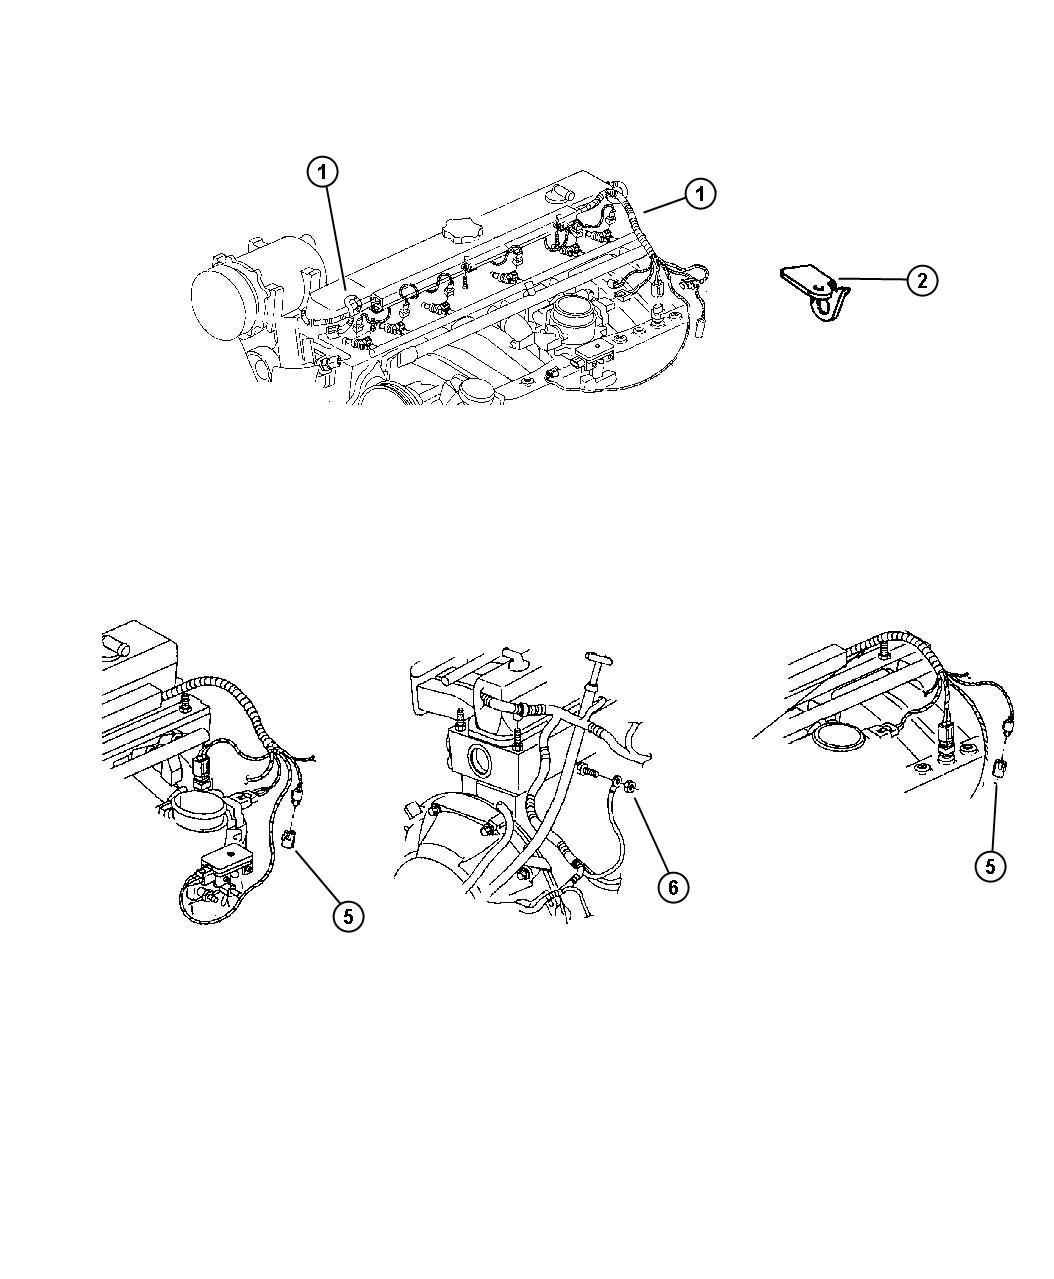 Jeep Wrangler Wiring. Engine. With abs & without off road